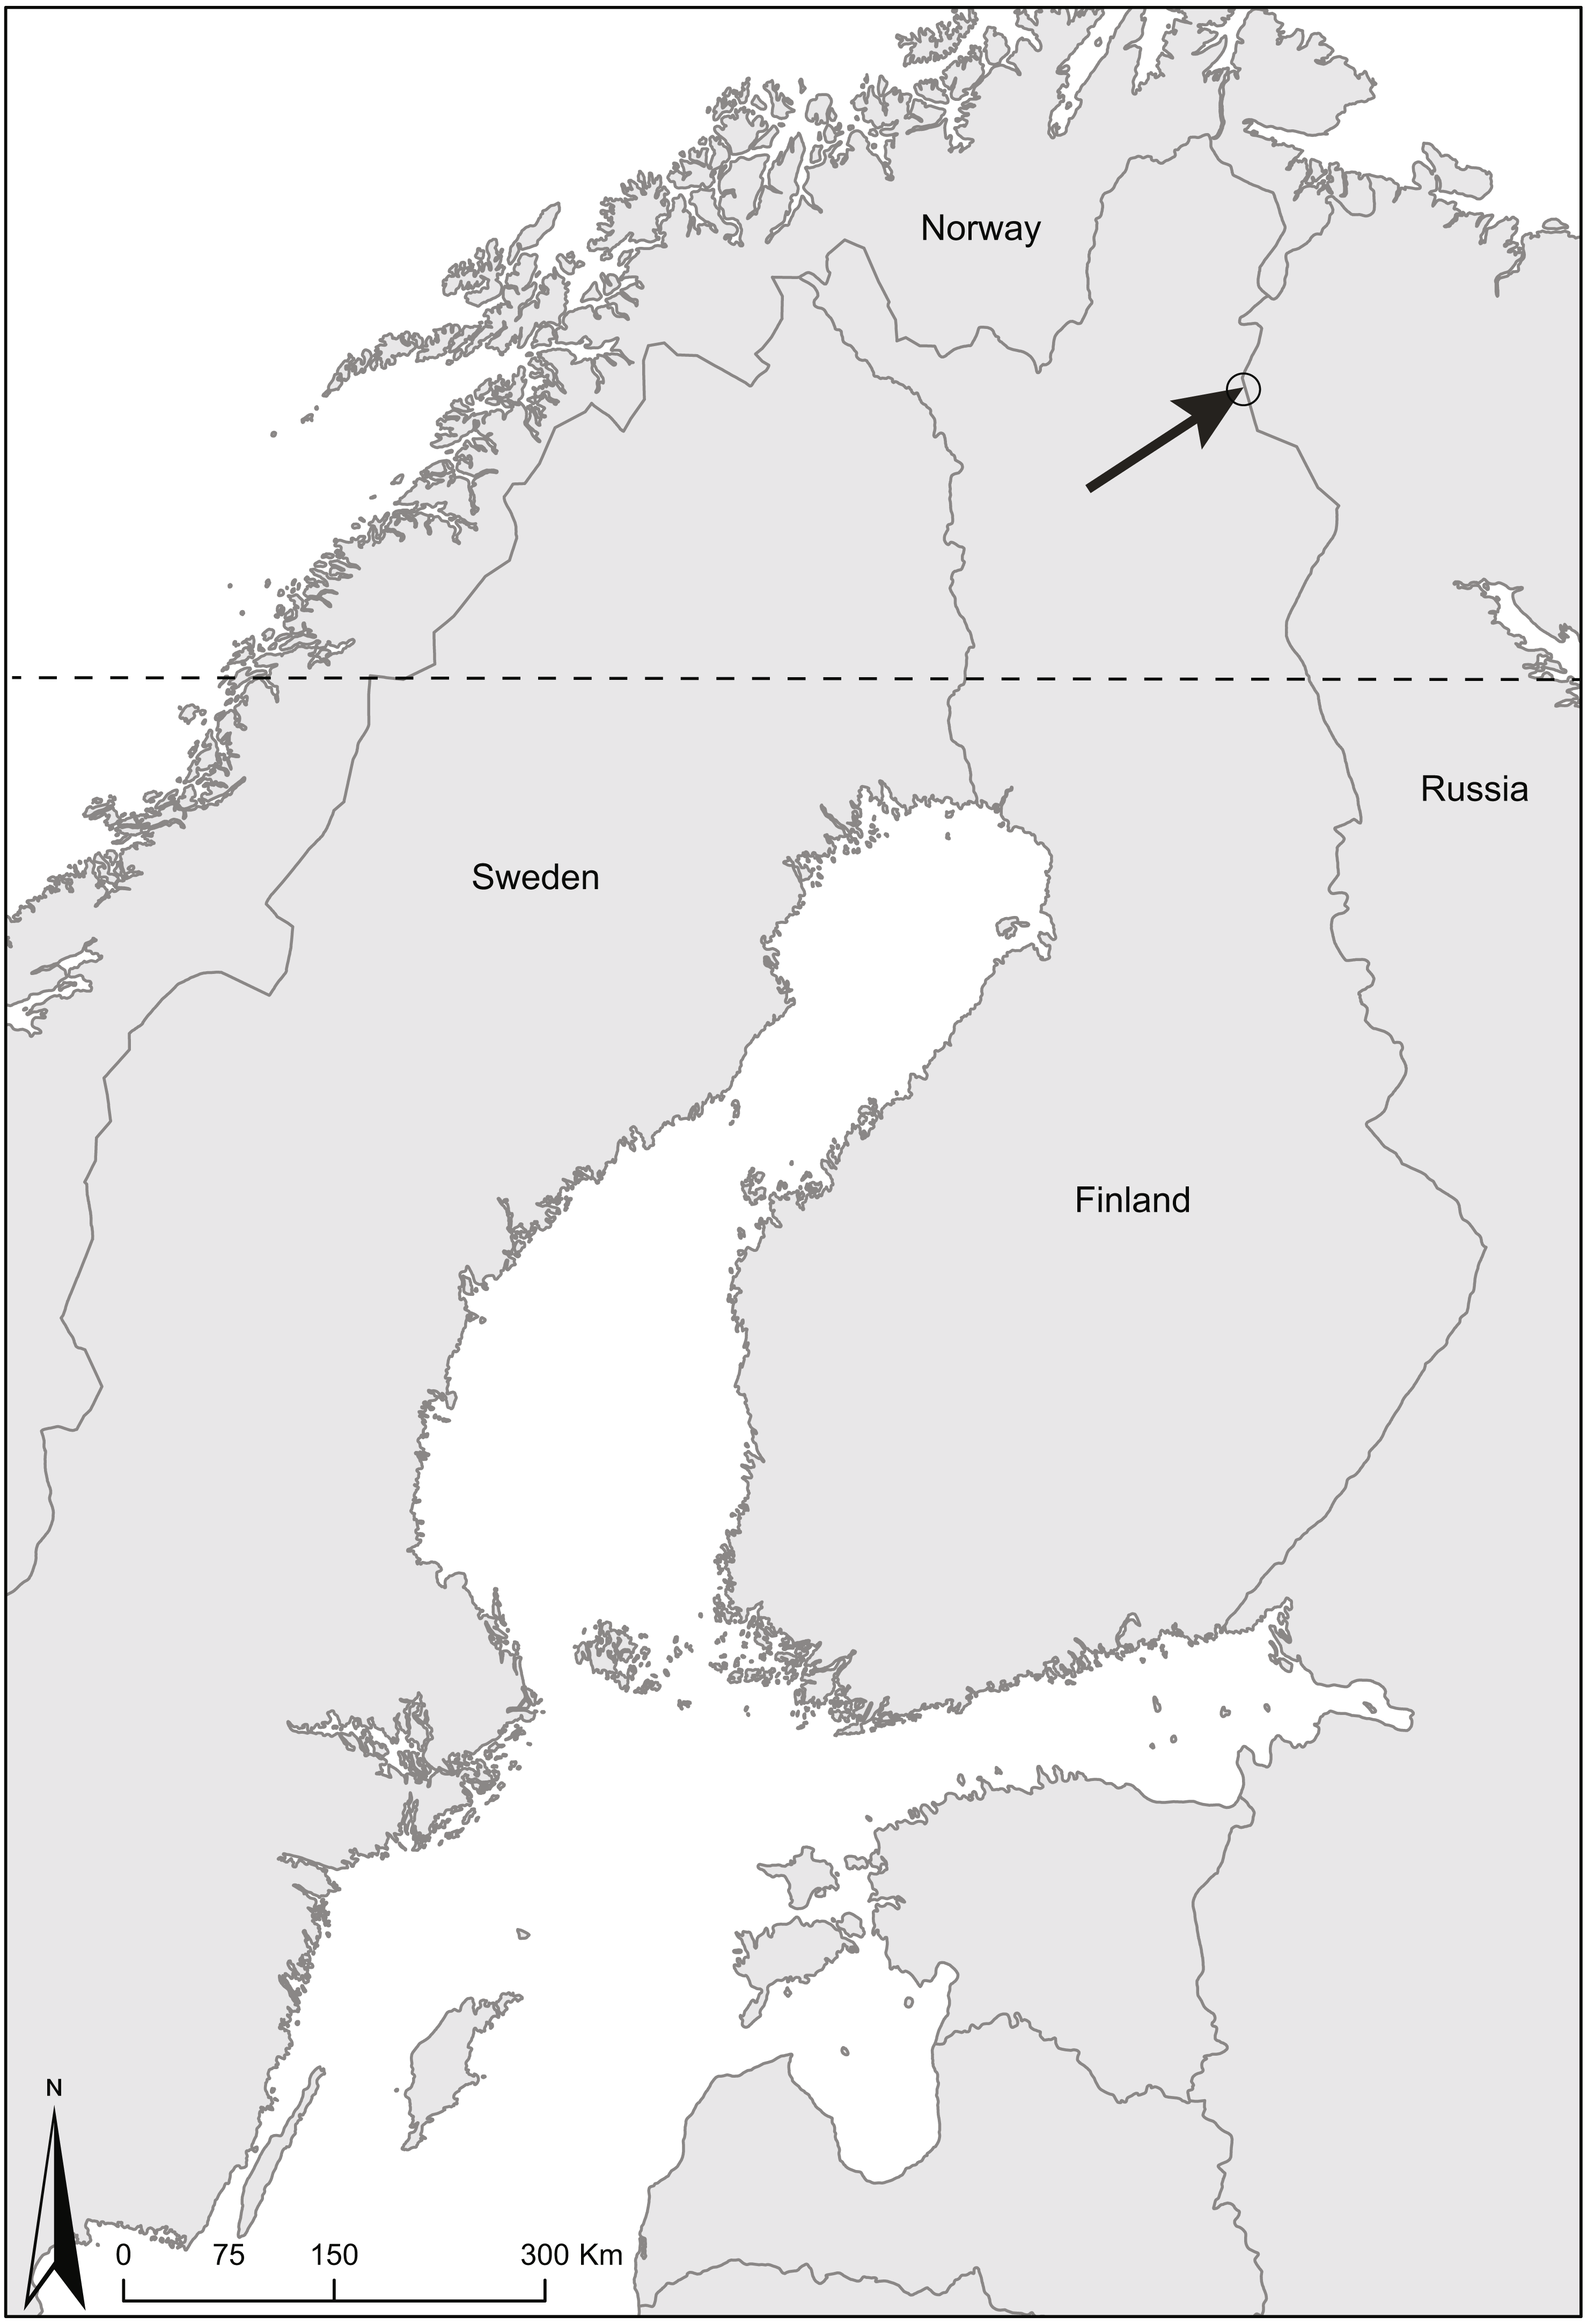 Effects of reindeer grazing and recovery after cessation of